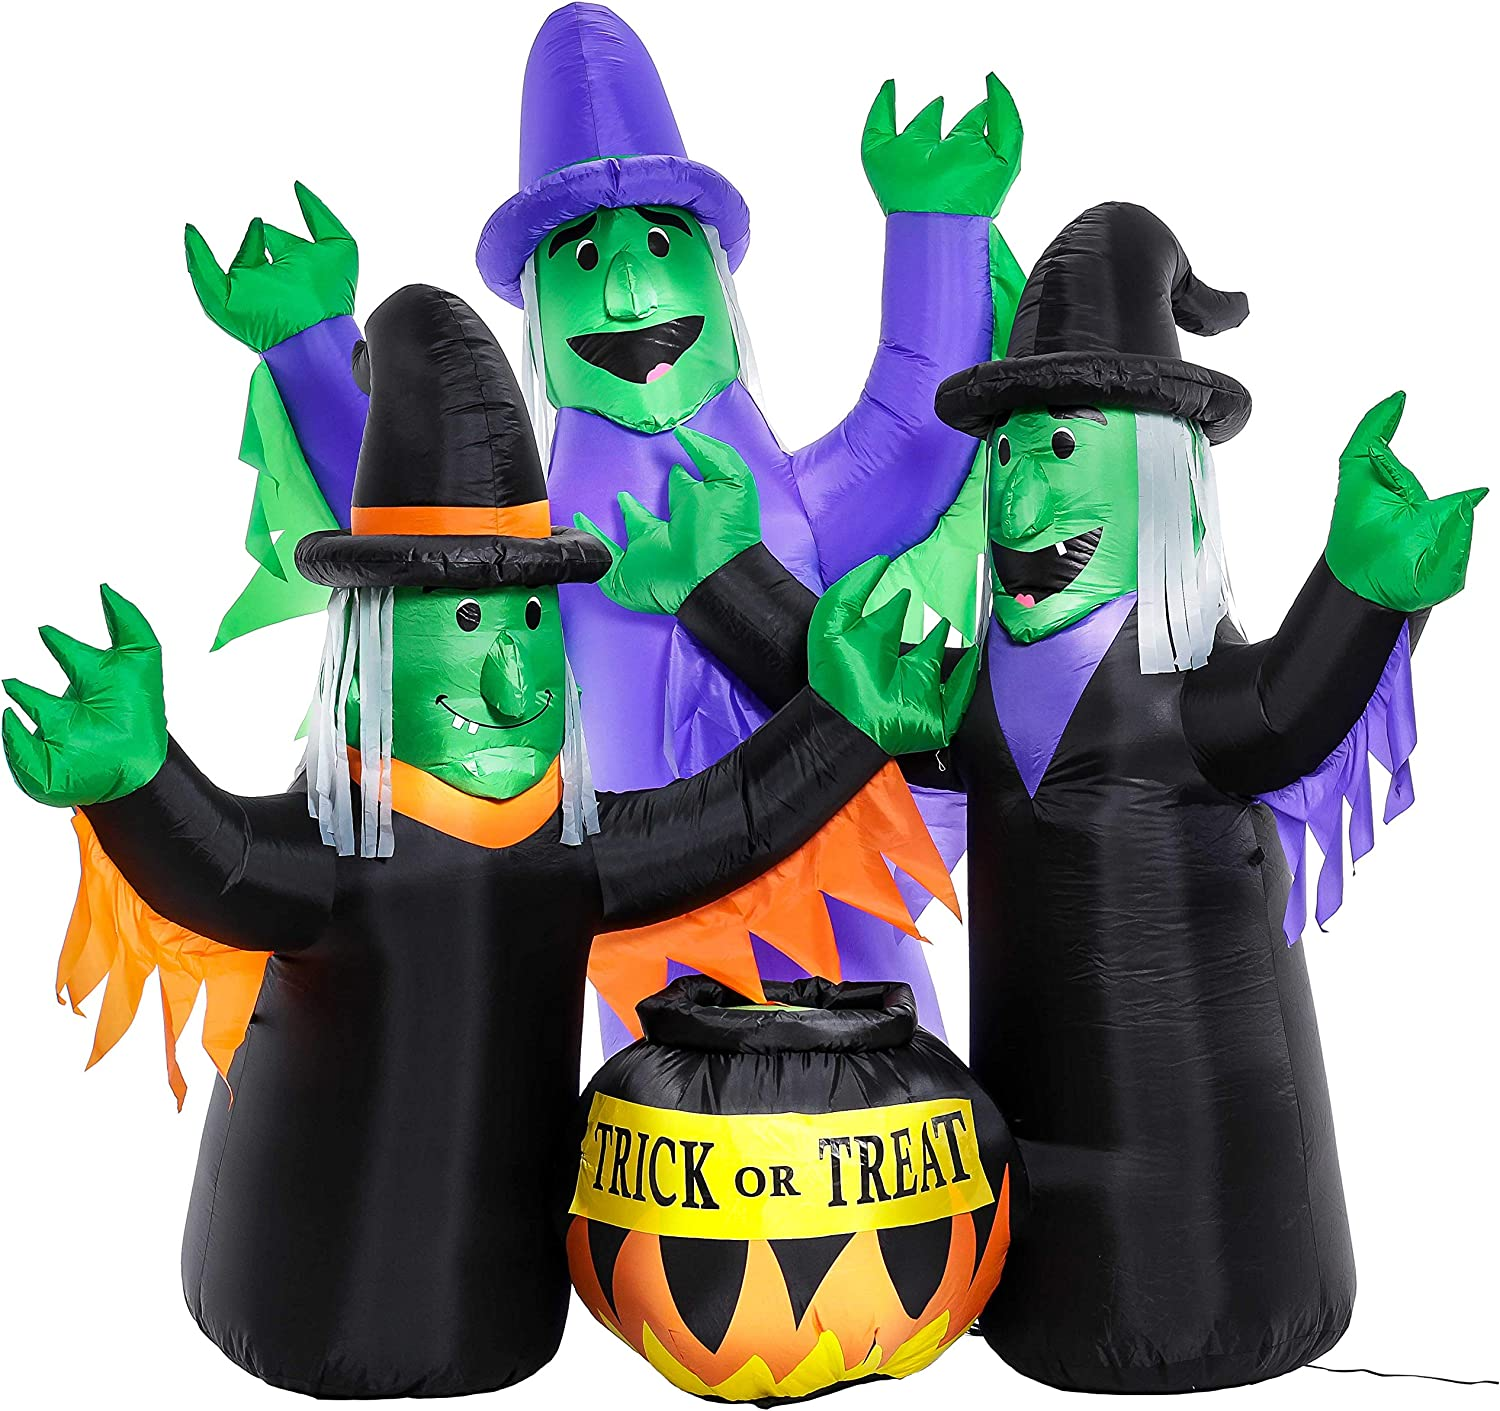 Amazon.com: Halloween Haunters 6 pies inflable dos brujas ...